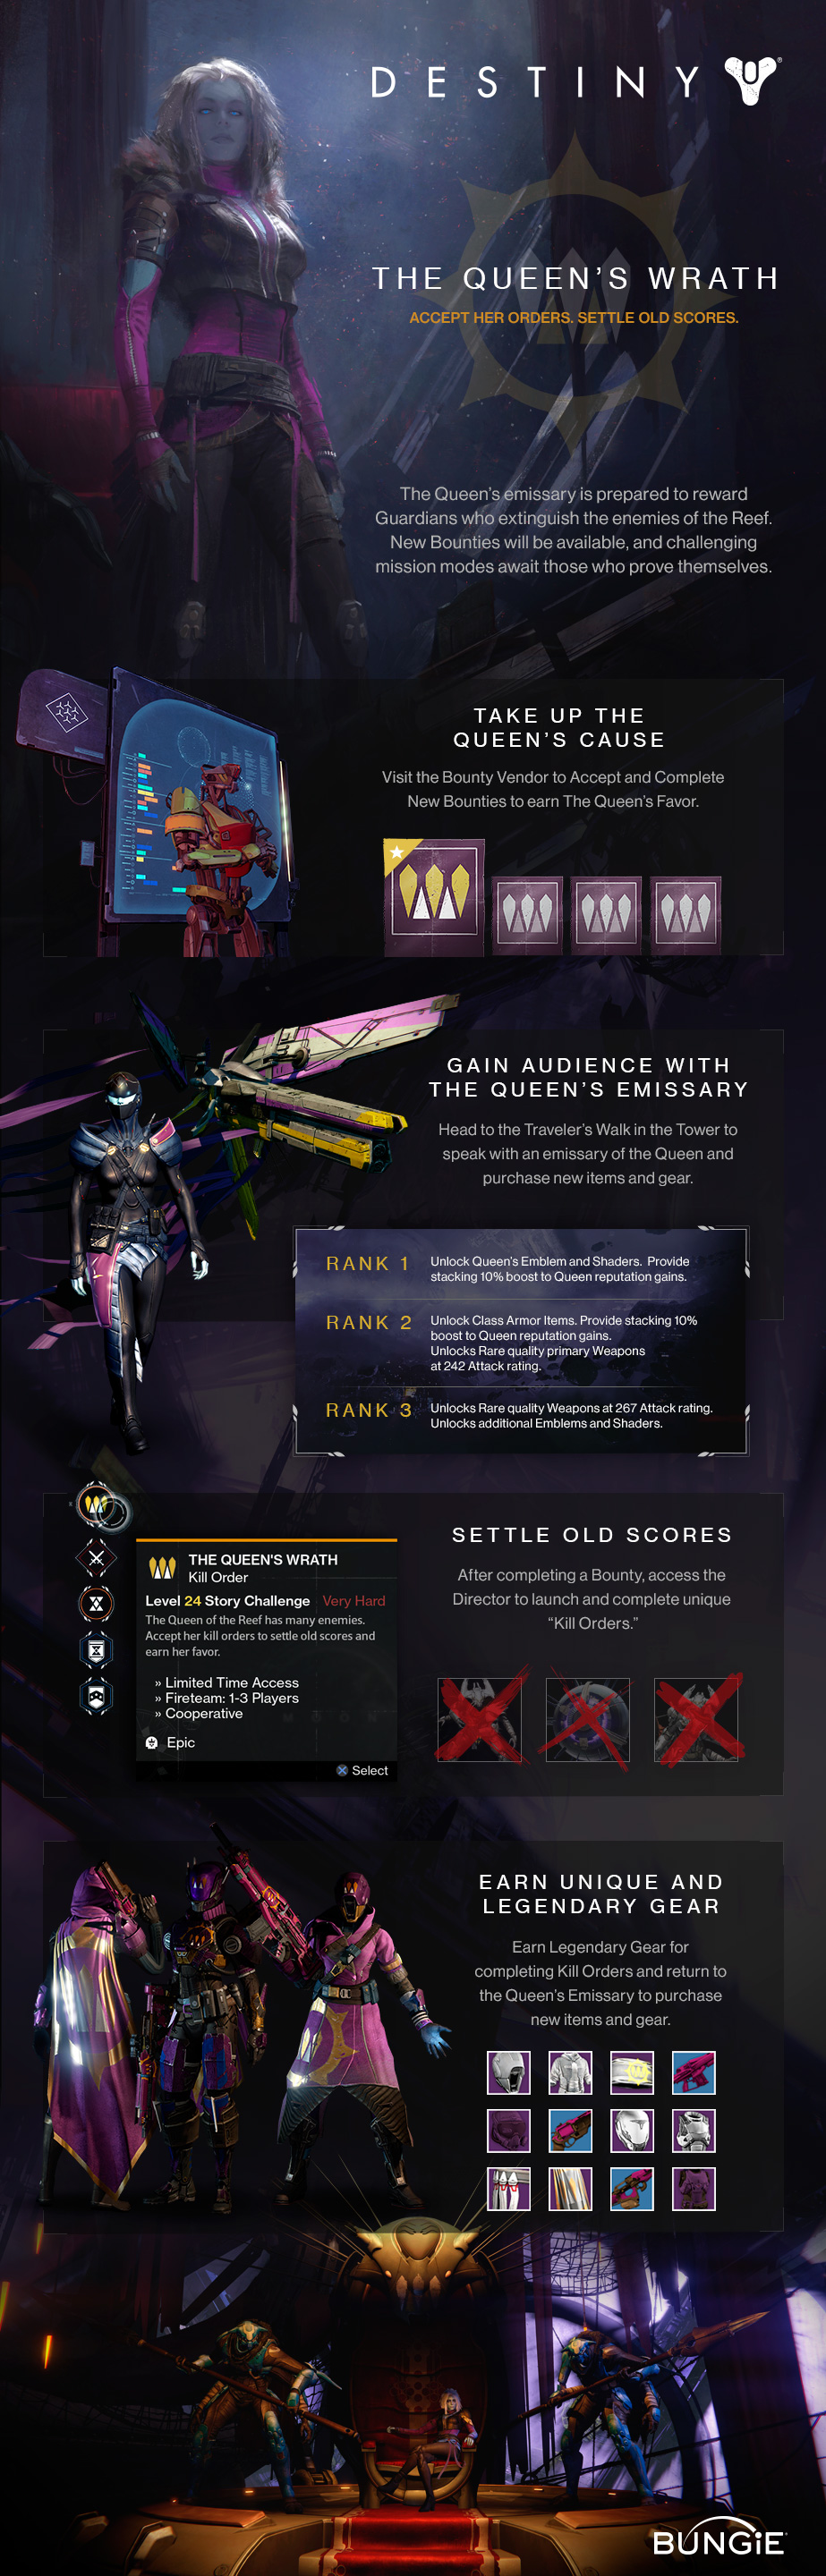 The Queen's Wrath | Destiny Wiki | FANDOM powered by Wikia